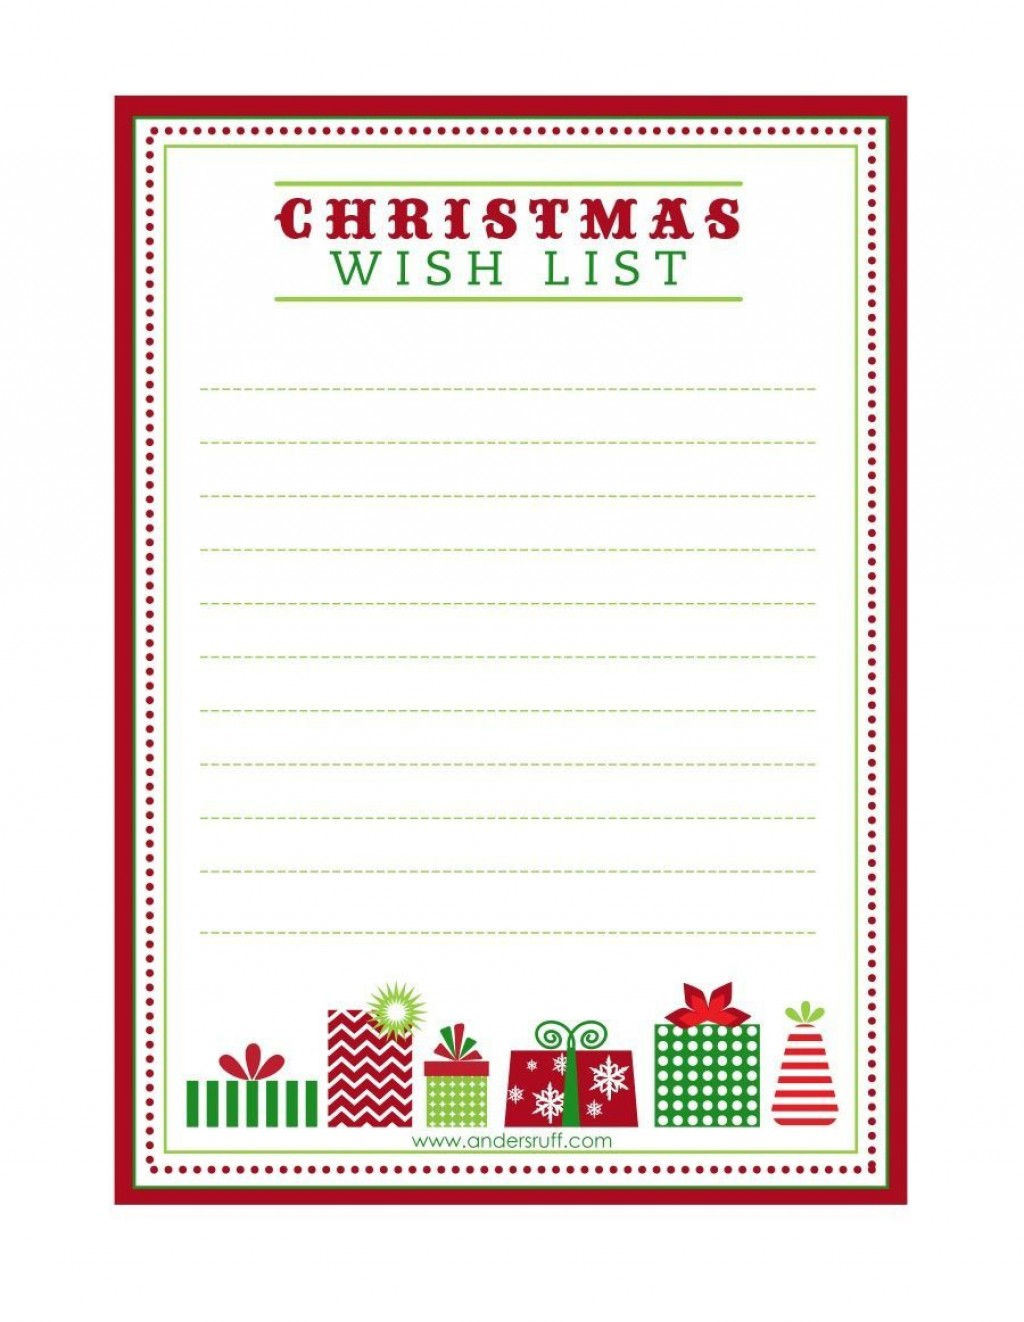 003 Exceptional Printable Wish List Template Highest Quality  Christma Free PdfLarge